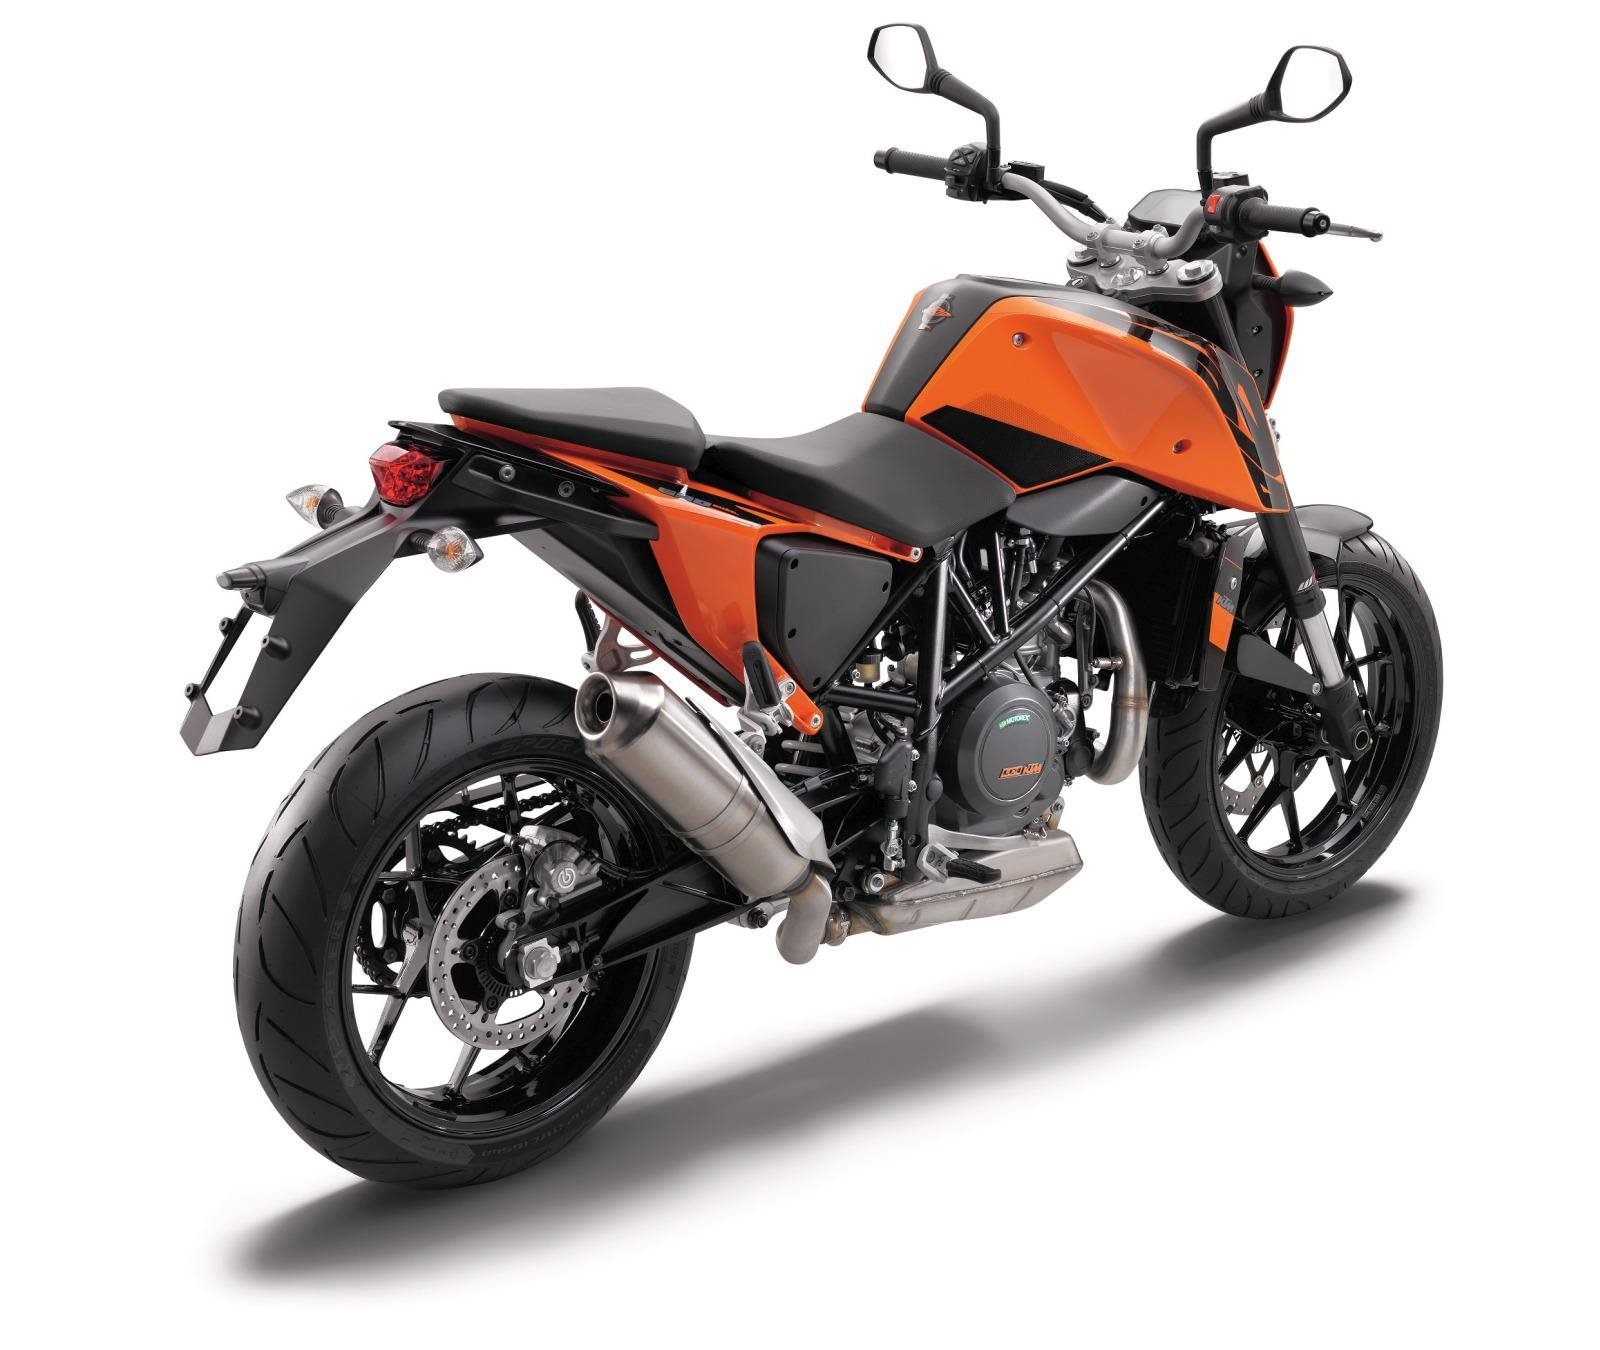 ktm 690 duke bilder und technische daten. Black Bedroom Furniture Sets. Home Design Ideas